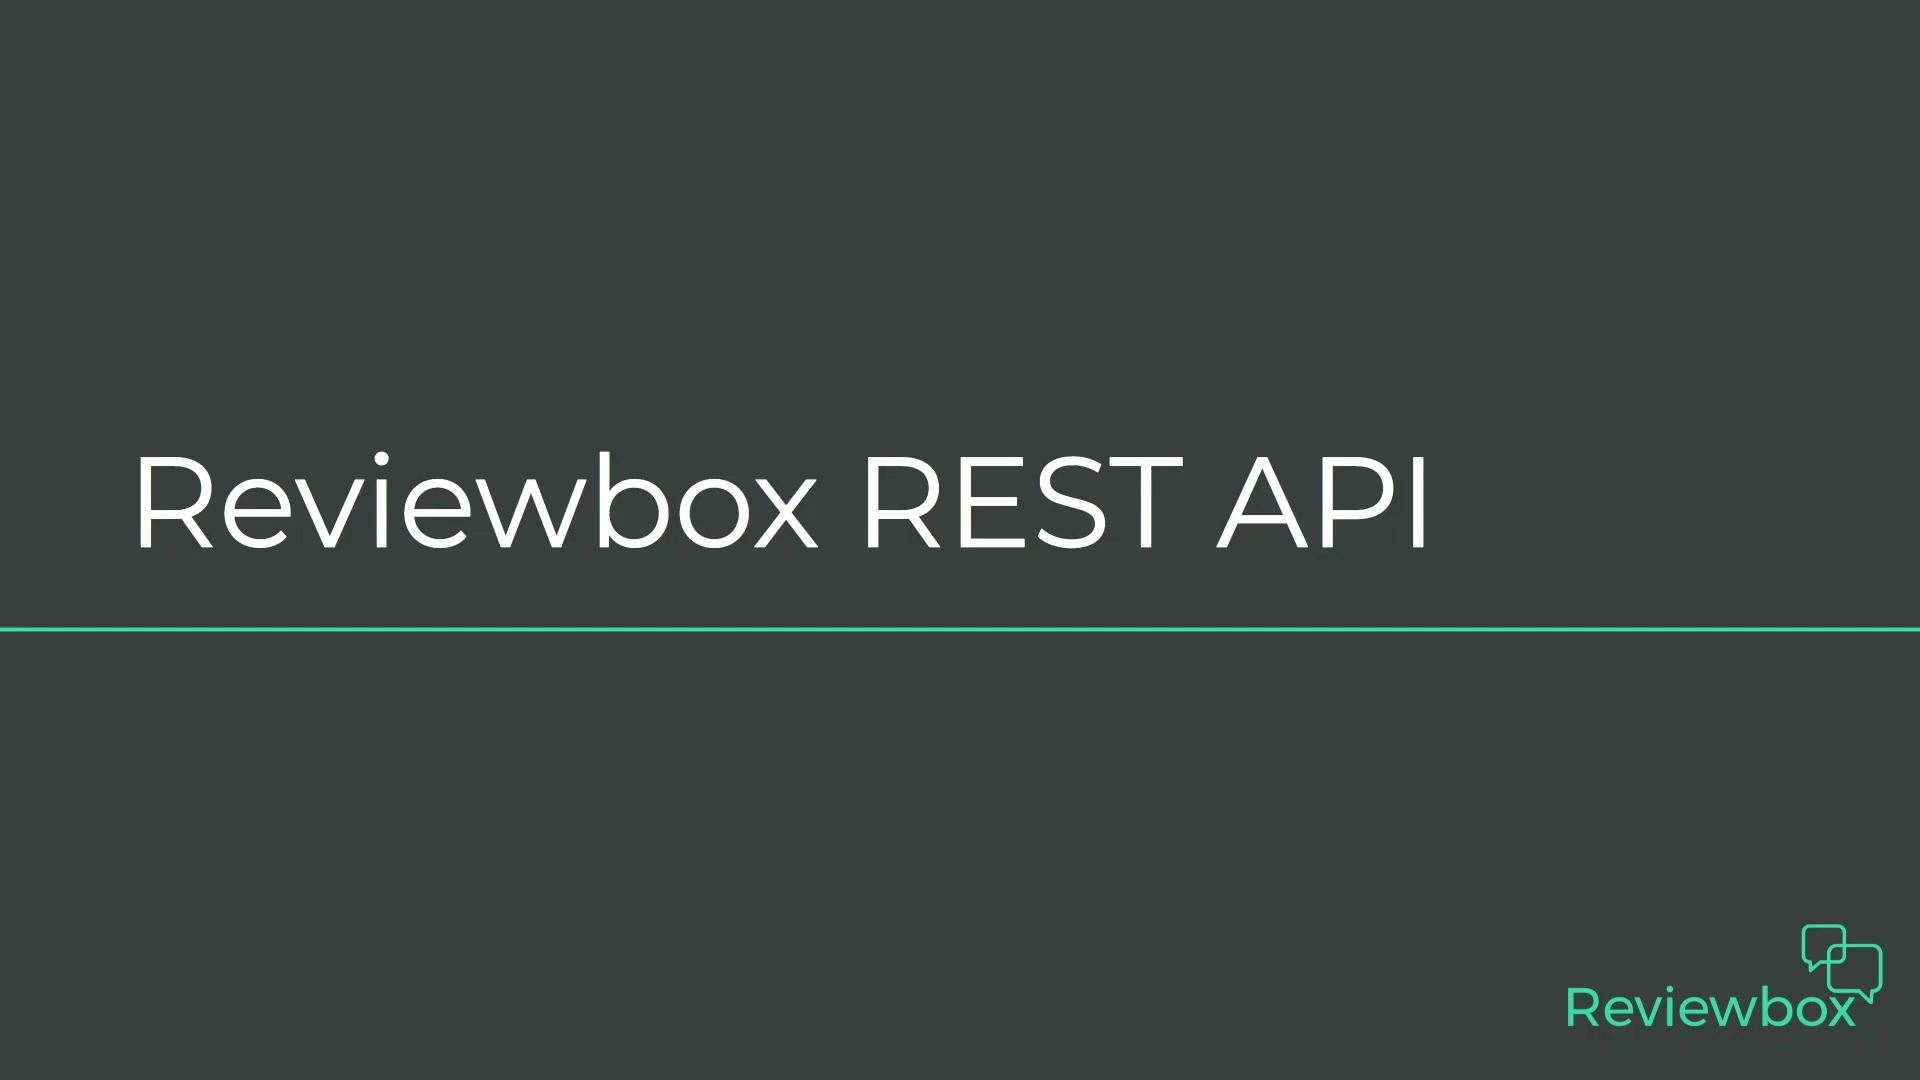 Exploring the Reviewbox API